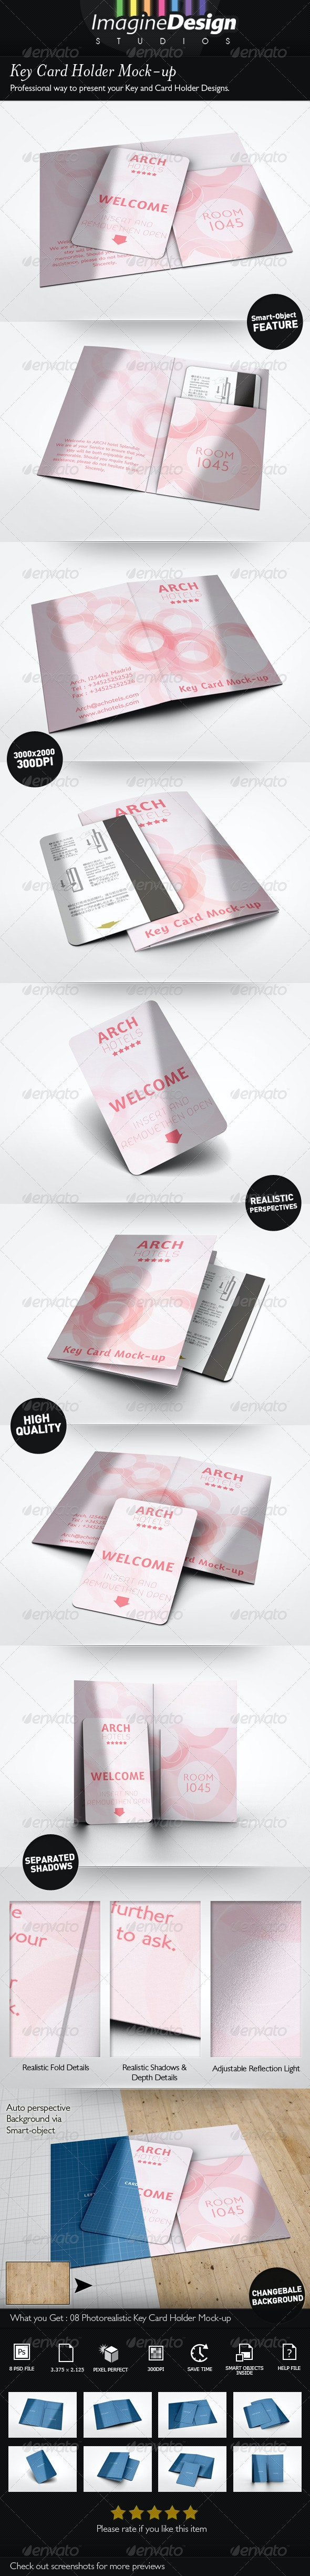 Key Card Holder Mock-up - Miscellaneous Print